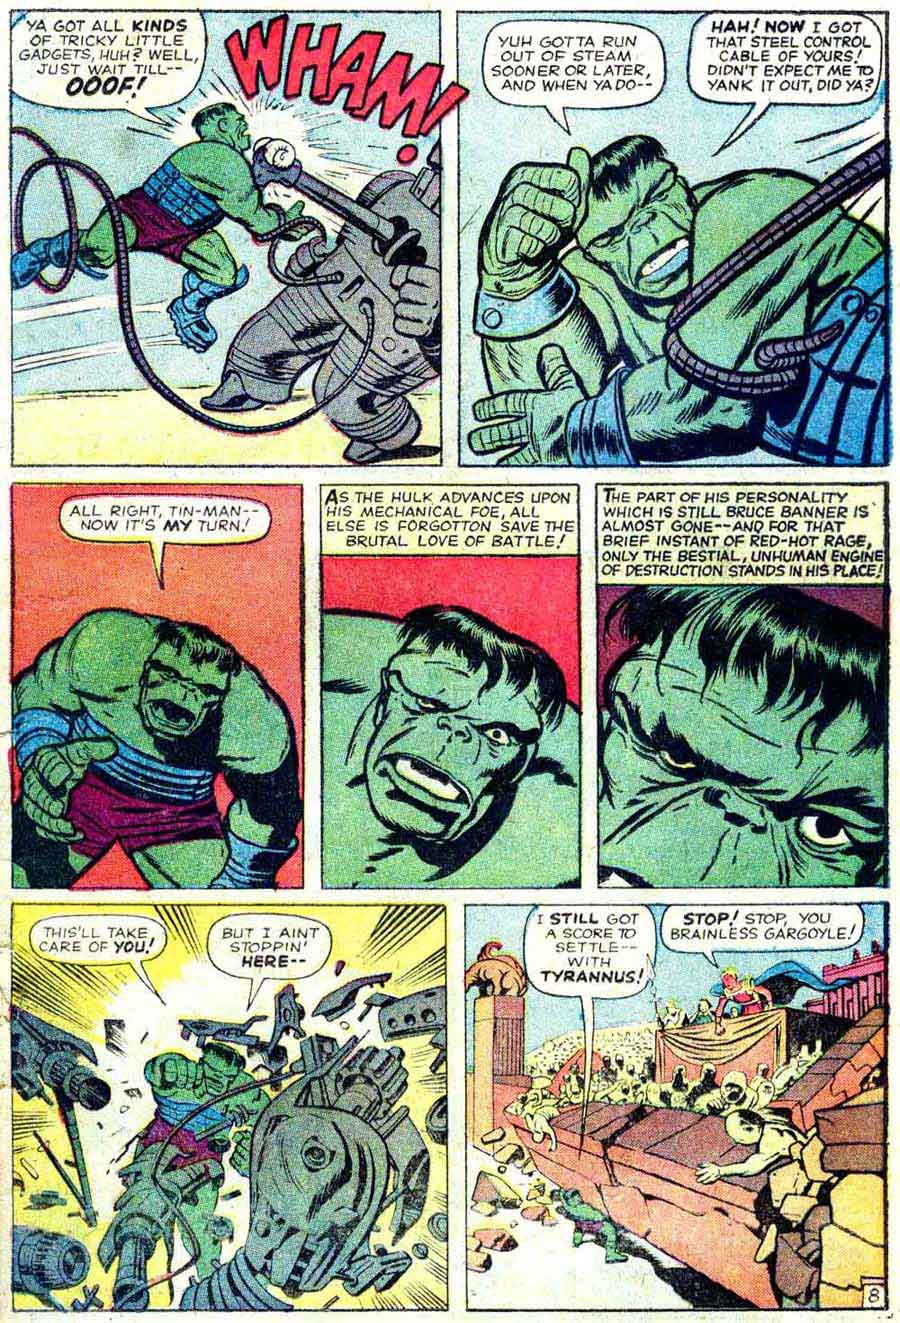 Incredible Hulk v1 #5 marvel comic book page art by Jack Kirby